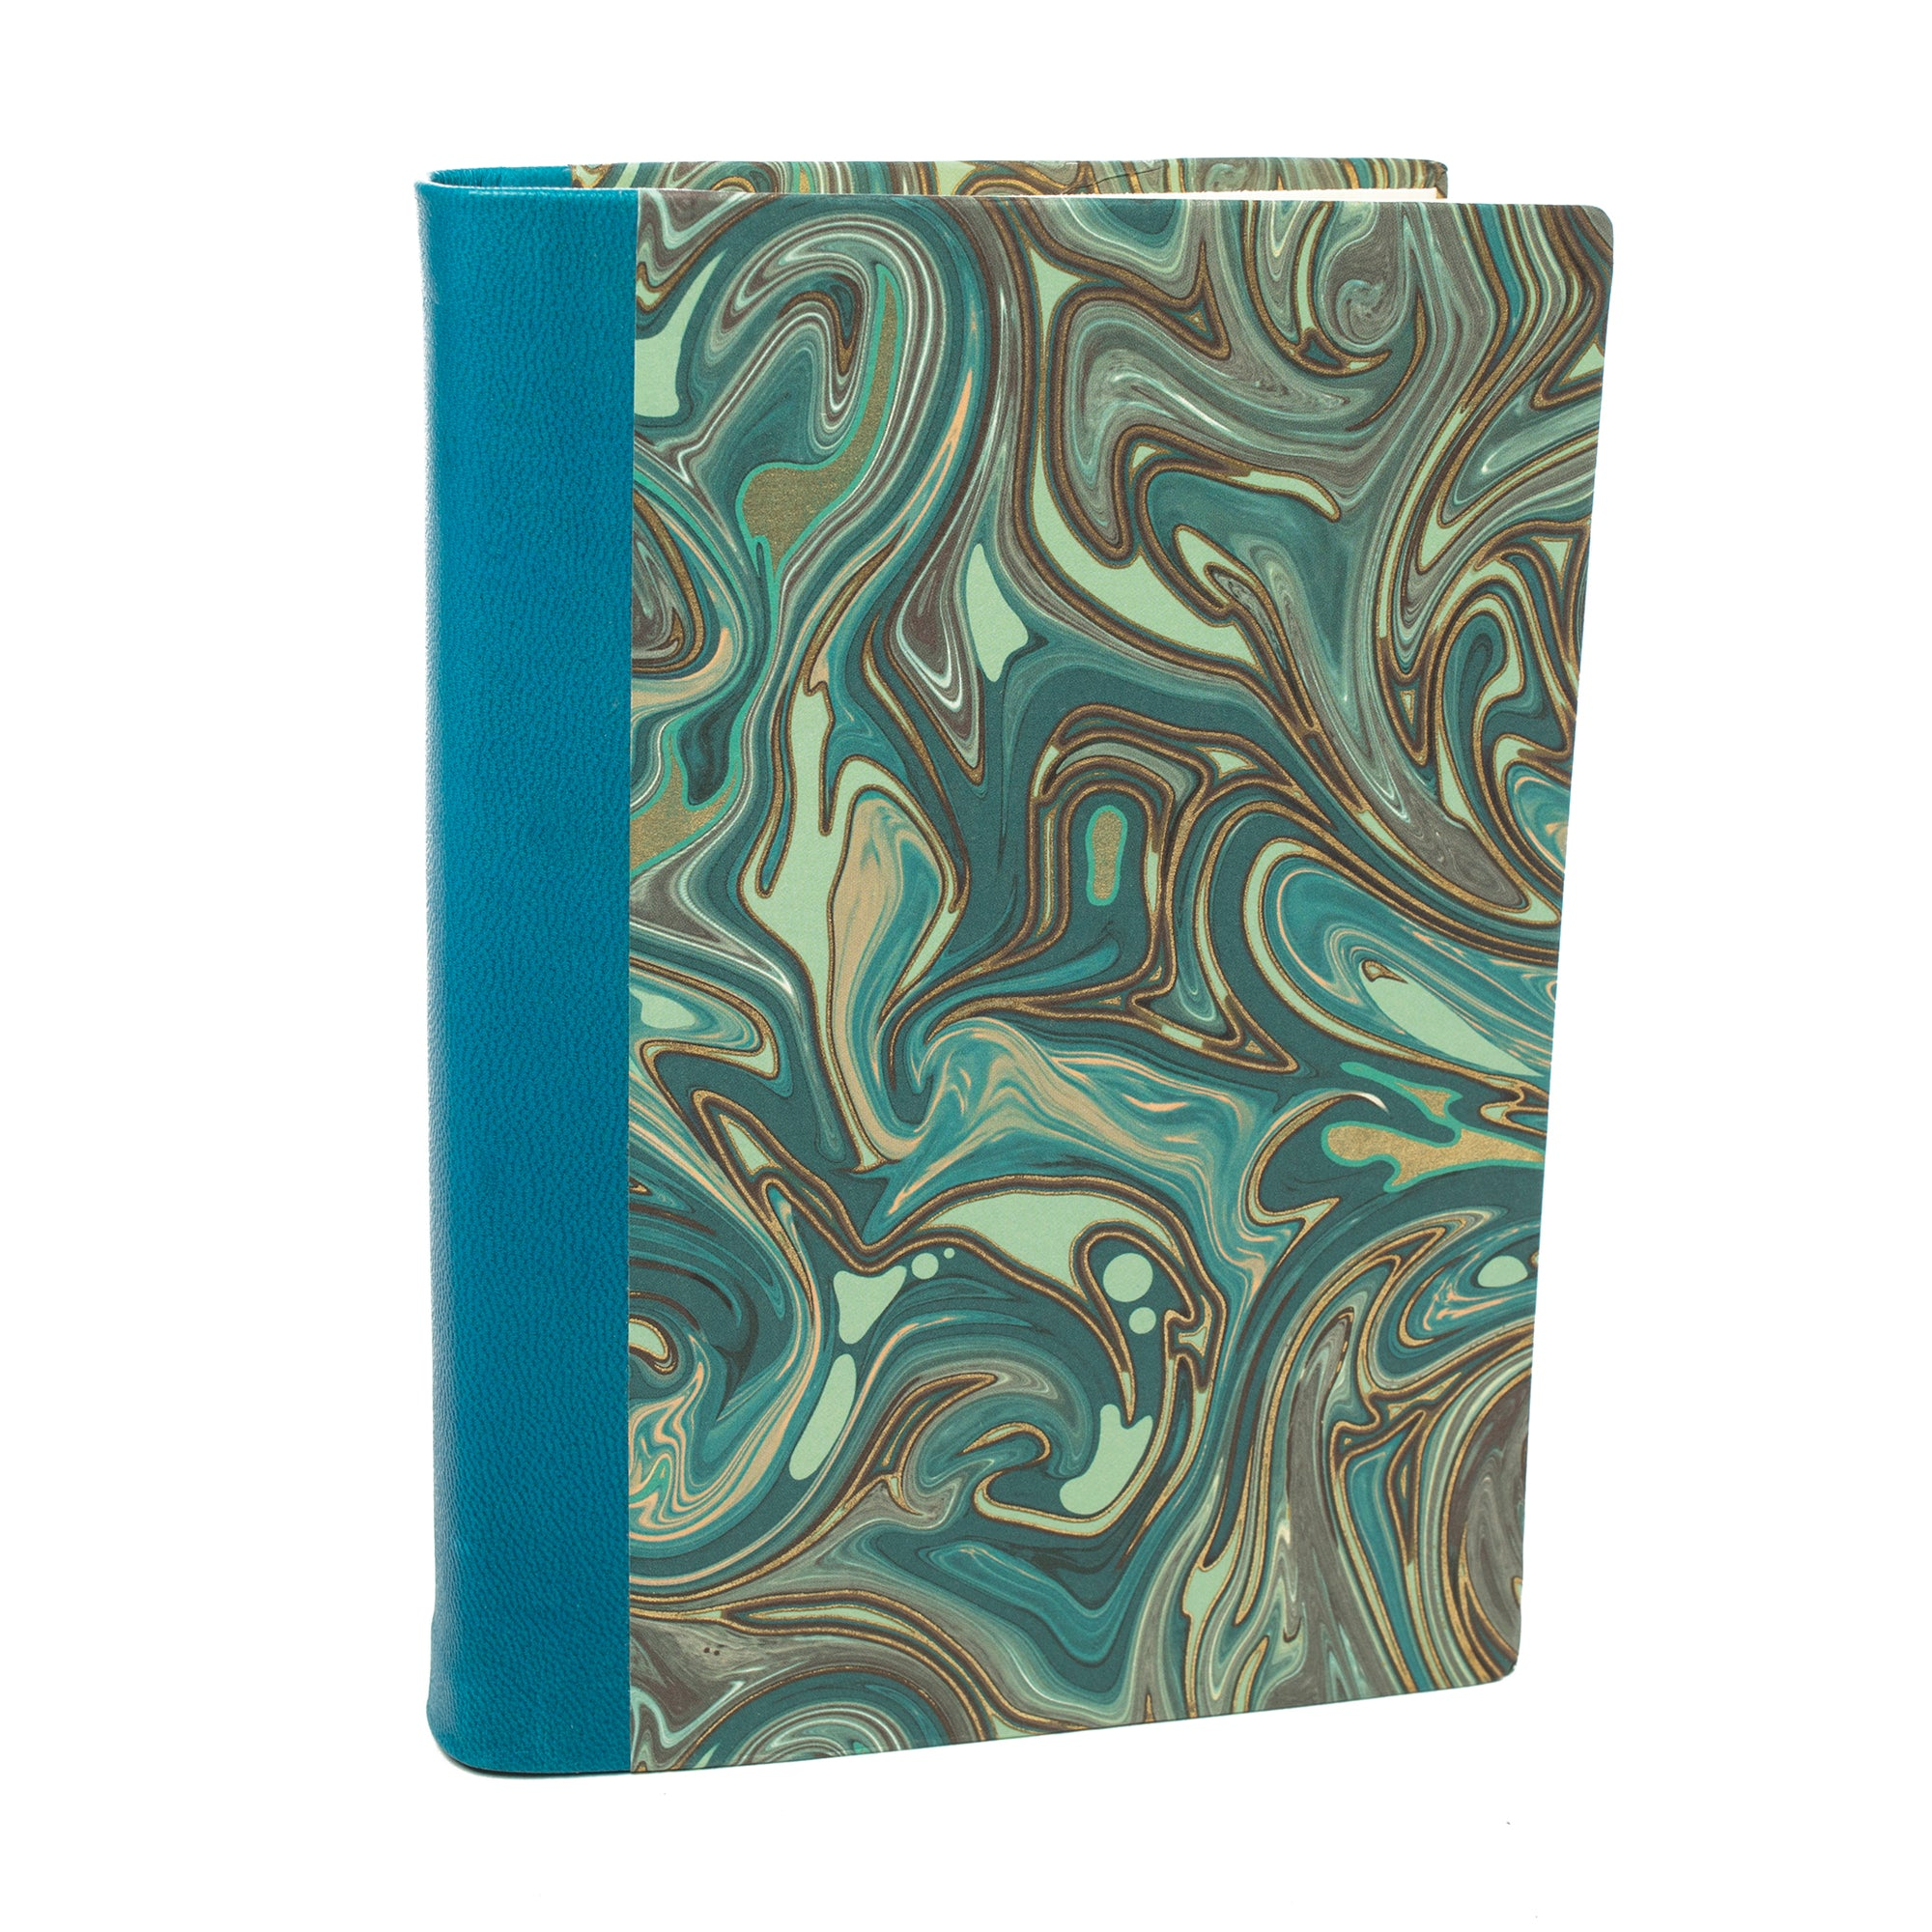 Leather Bound Journal with Tuscan Paper- Blue | Getty Store